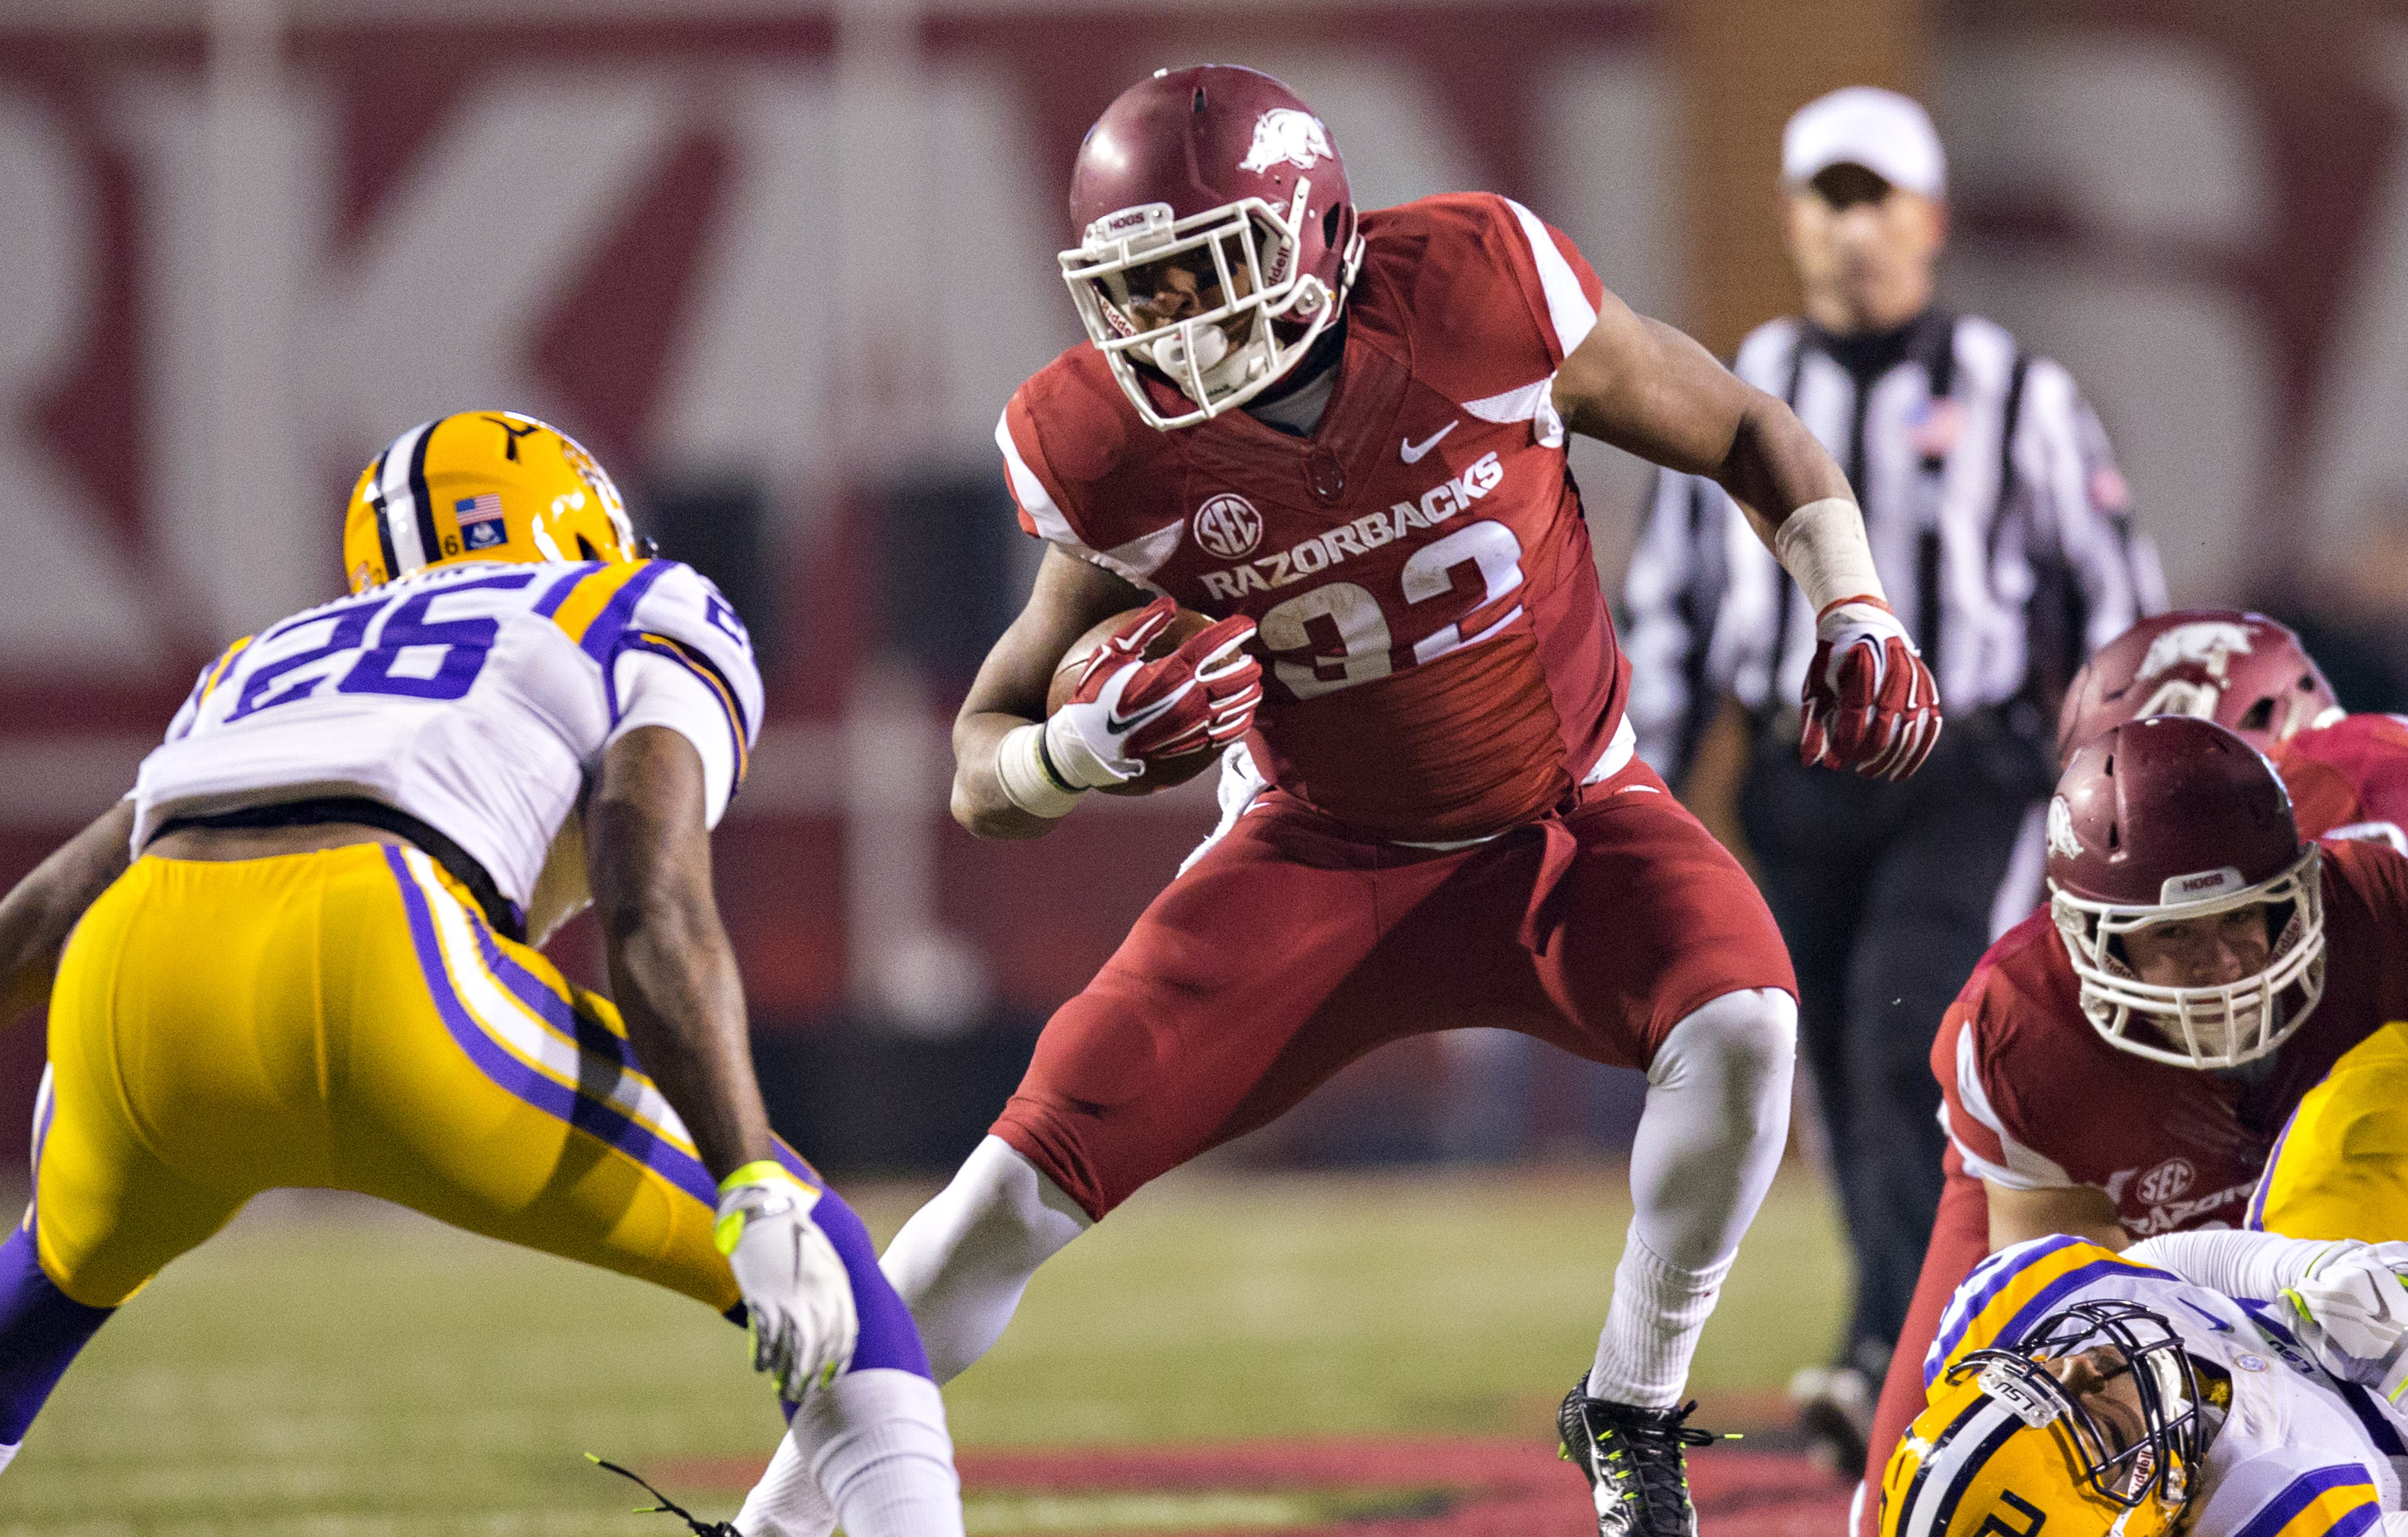 FAYETTEVILLE, AR - NOVEMBER 15:  Jonathan Williams #32 of the Arkansas Razorbacks runs the ball during the first quarter against the LSU Tigers at Razorback Stadium on November 15, 2014 in Fayetteville, Arkansas.  The Razorbacks defeated the Tigers 17-0.  (Photo by Wesley Hitt/Getty Images)